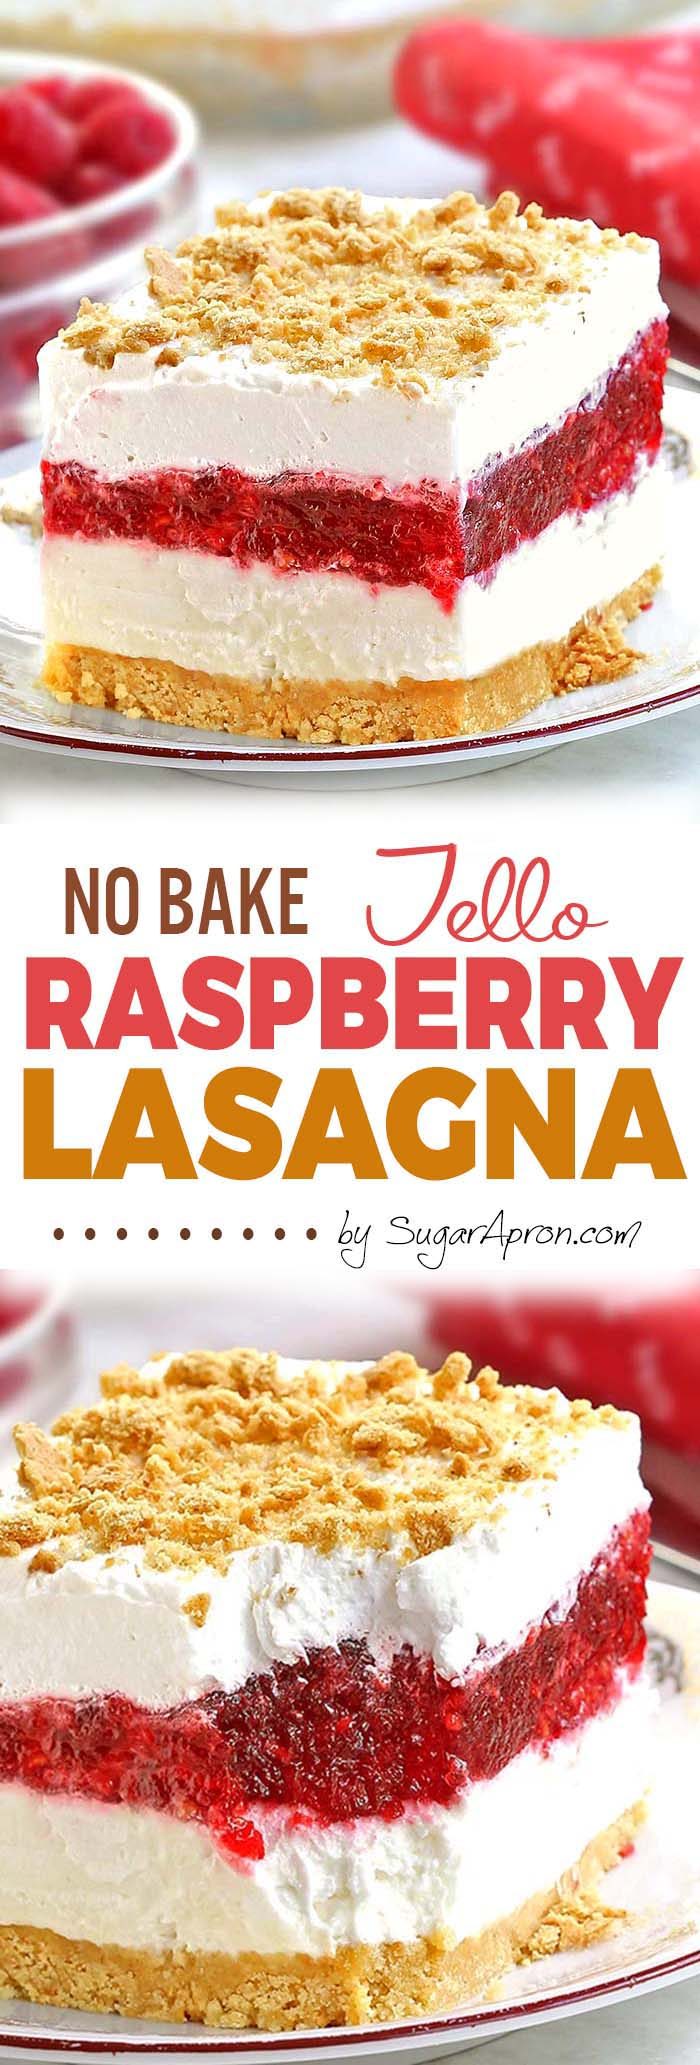 No Bake Raspberry Jello Lasagna - A light and easy dessert that is perfect for spring/summer gatherings.